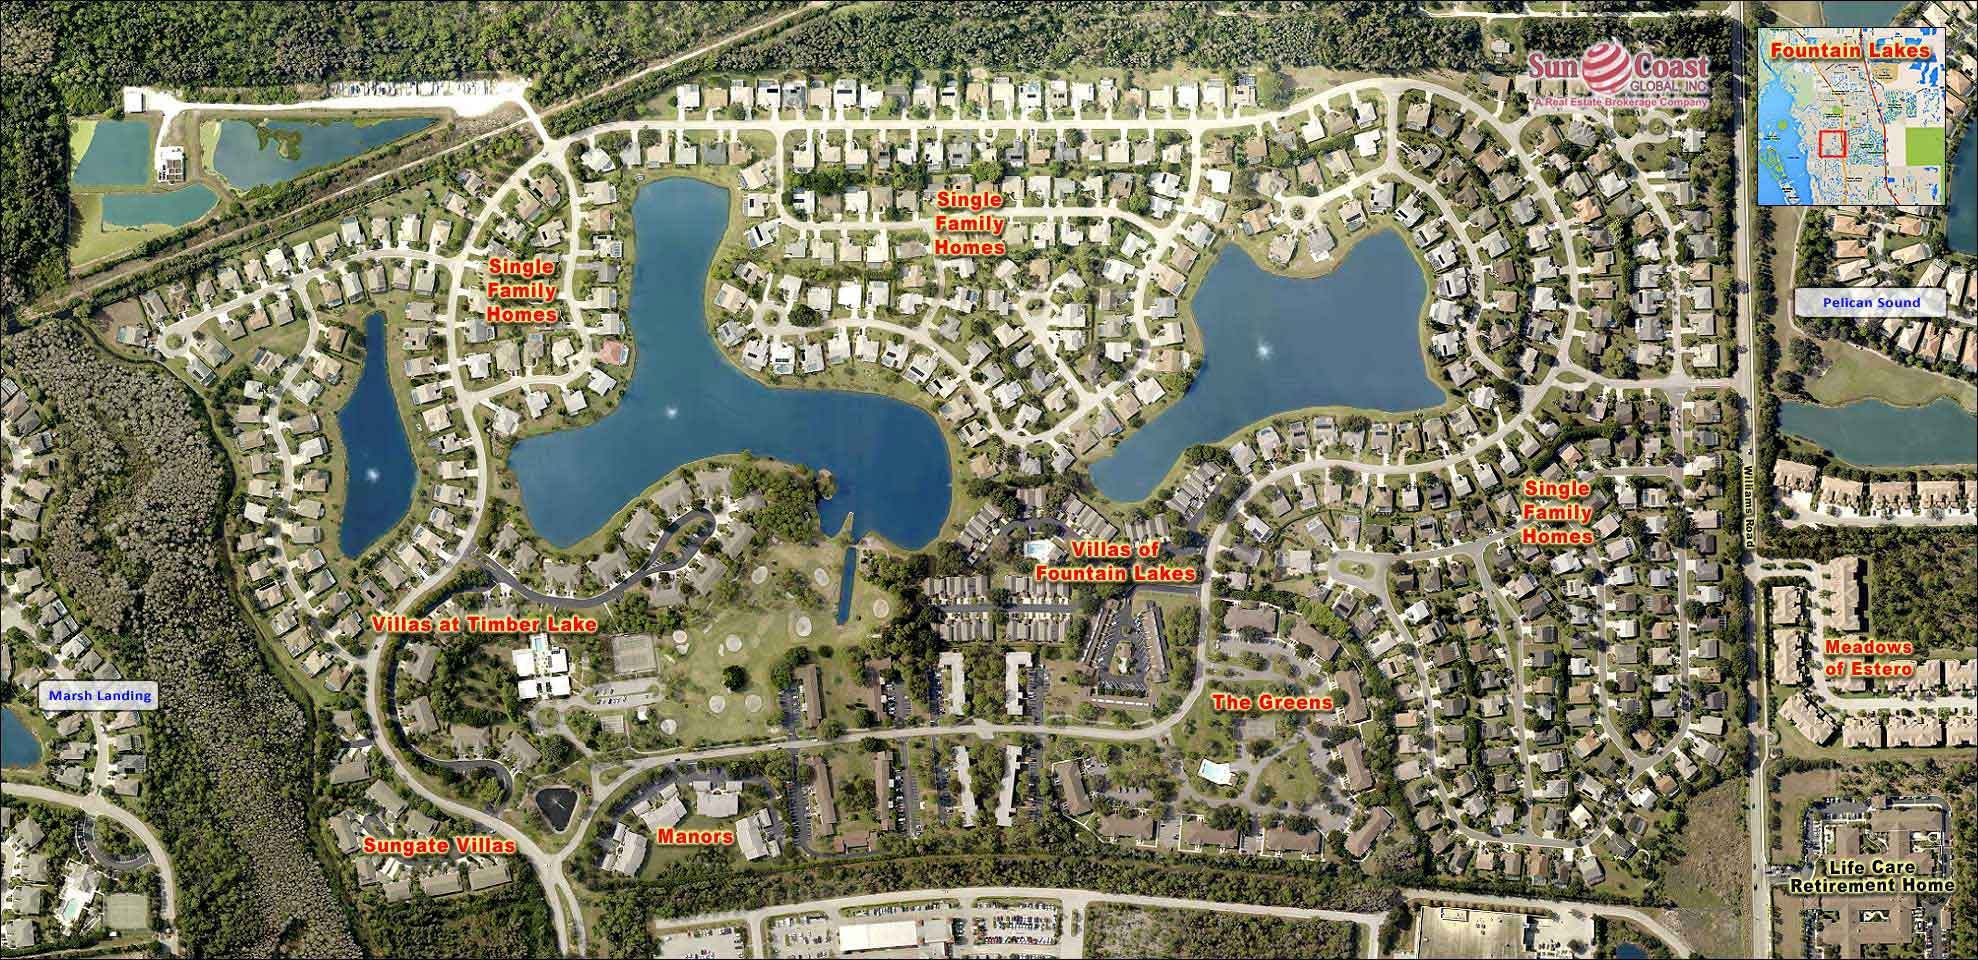 Fountain Lakes Overhead Map